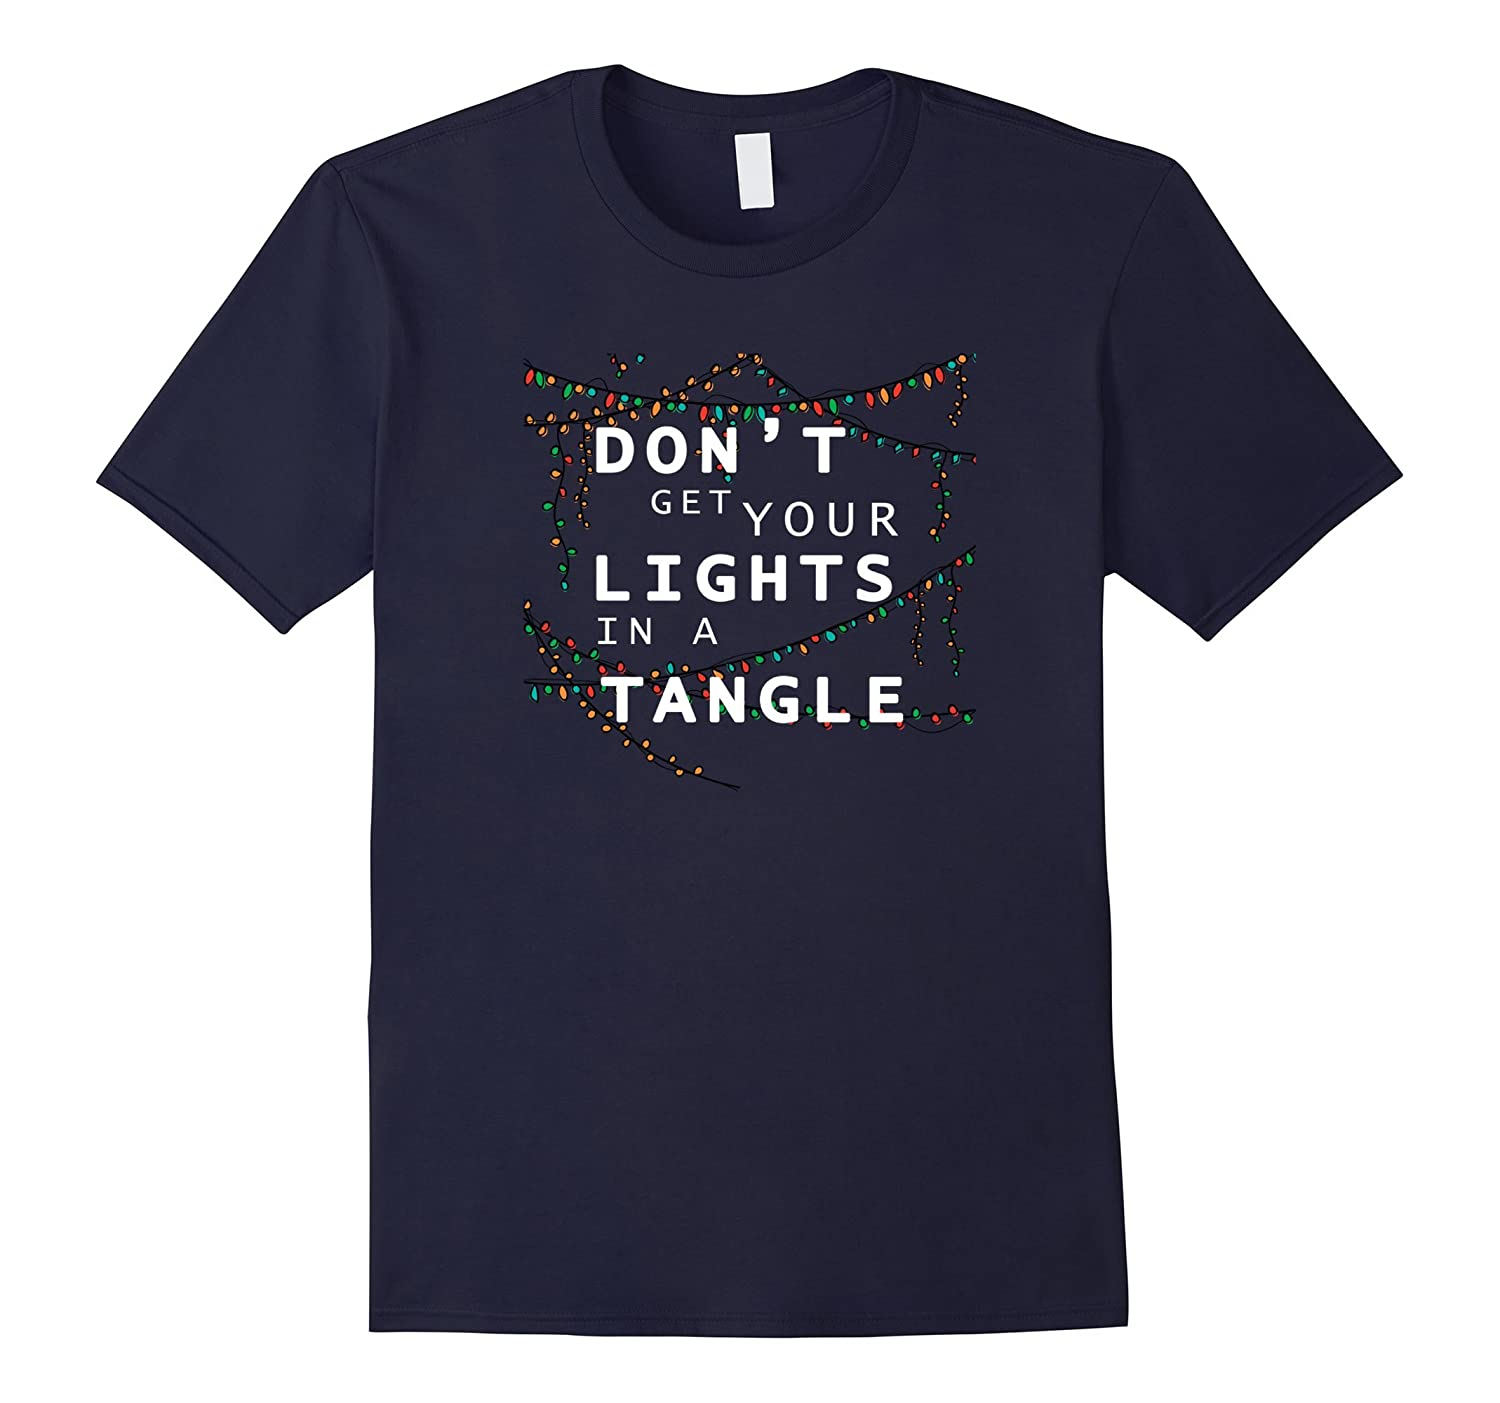 Don't Get Your Lights In A Tangle Funny Christmas T-Shirt